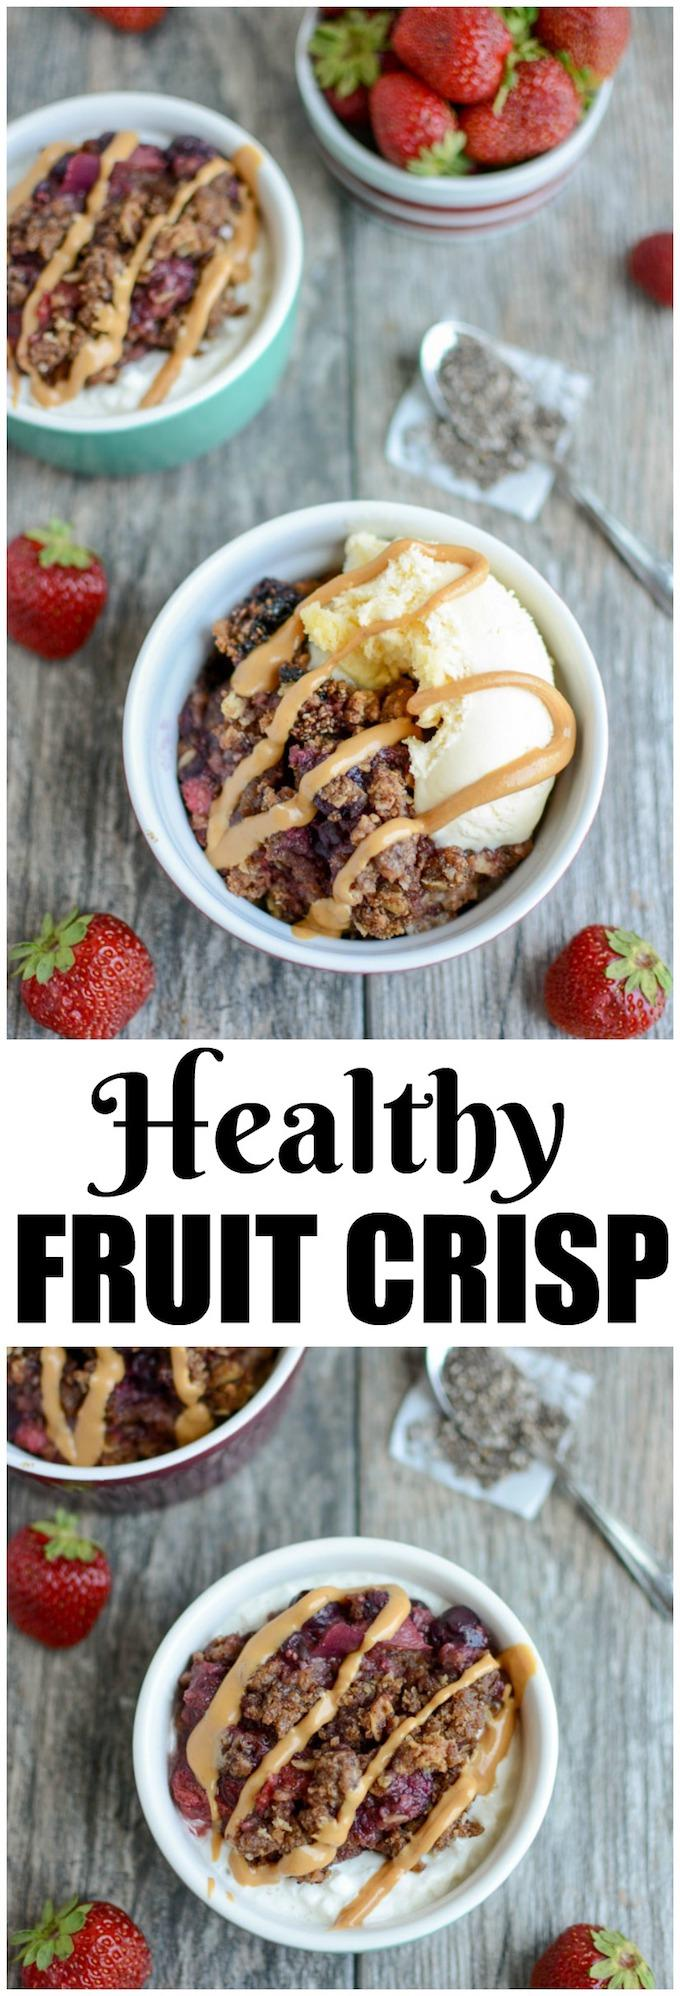 This Healthy Fruit Crisp can be made in the slow cooker or in the oven. It's low in added sugar and packed with fiber and healthy fats. Serve it over yogurt or cottage cheese for breakfast or with ice cream for dessert.